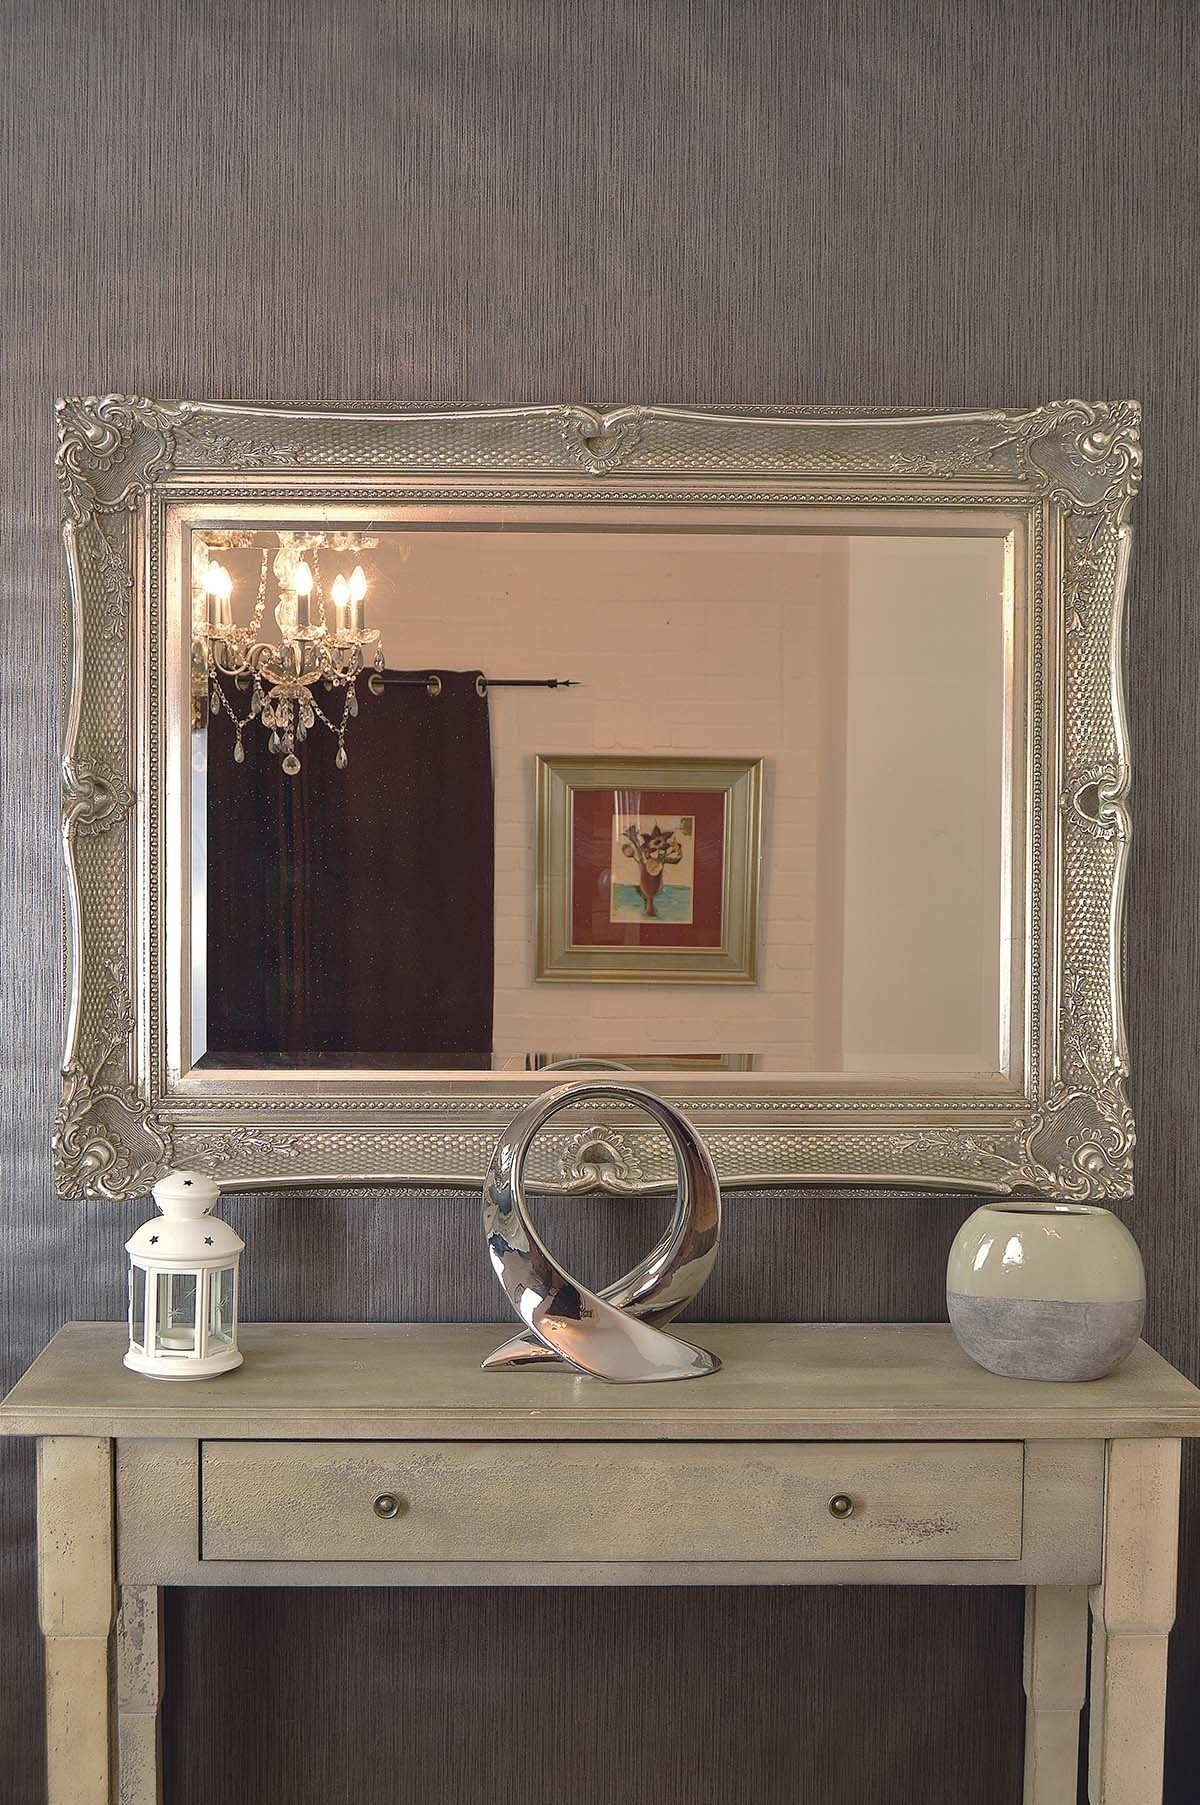 Large Antique Style Silver Ornate Wood Wall Mirror 4ftx3ft In Large Ornate Wall Mirror (Image 6 of 15)